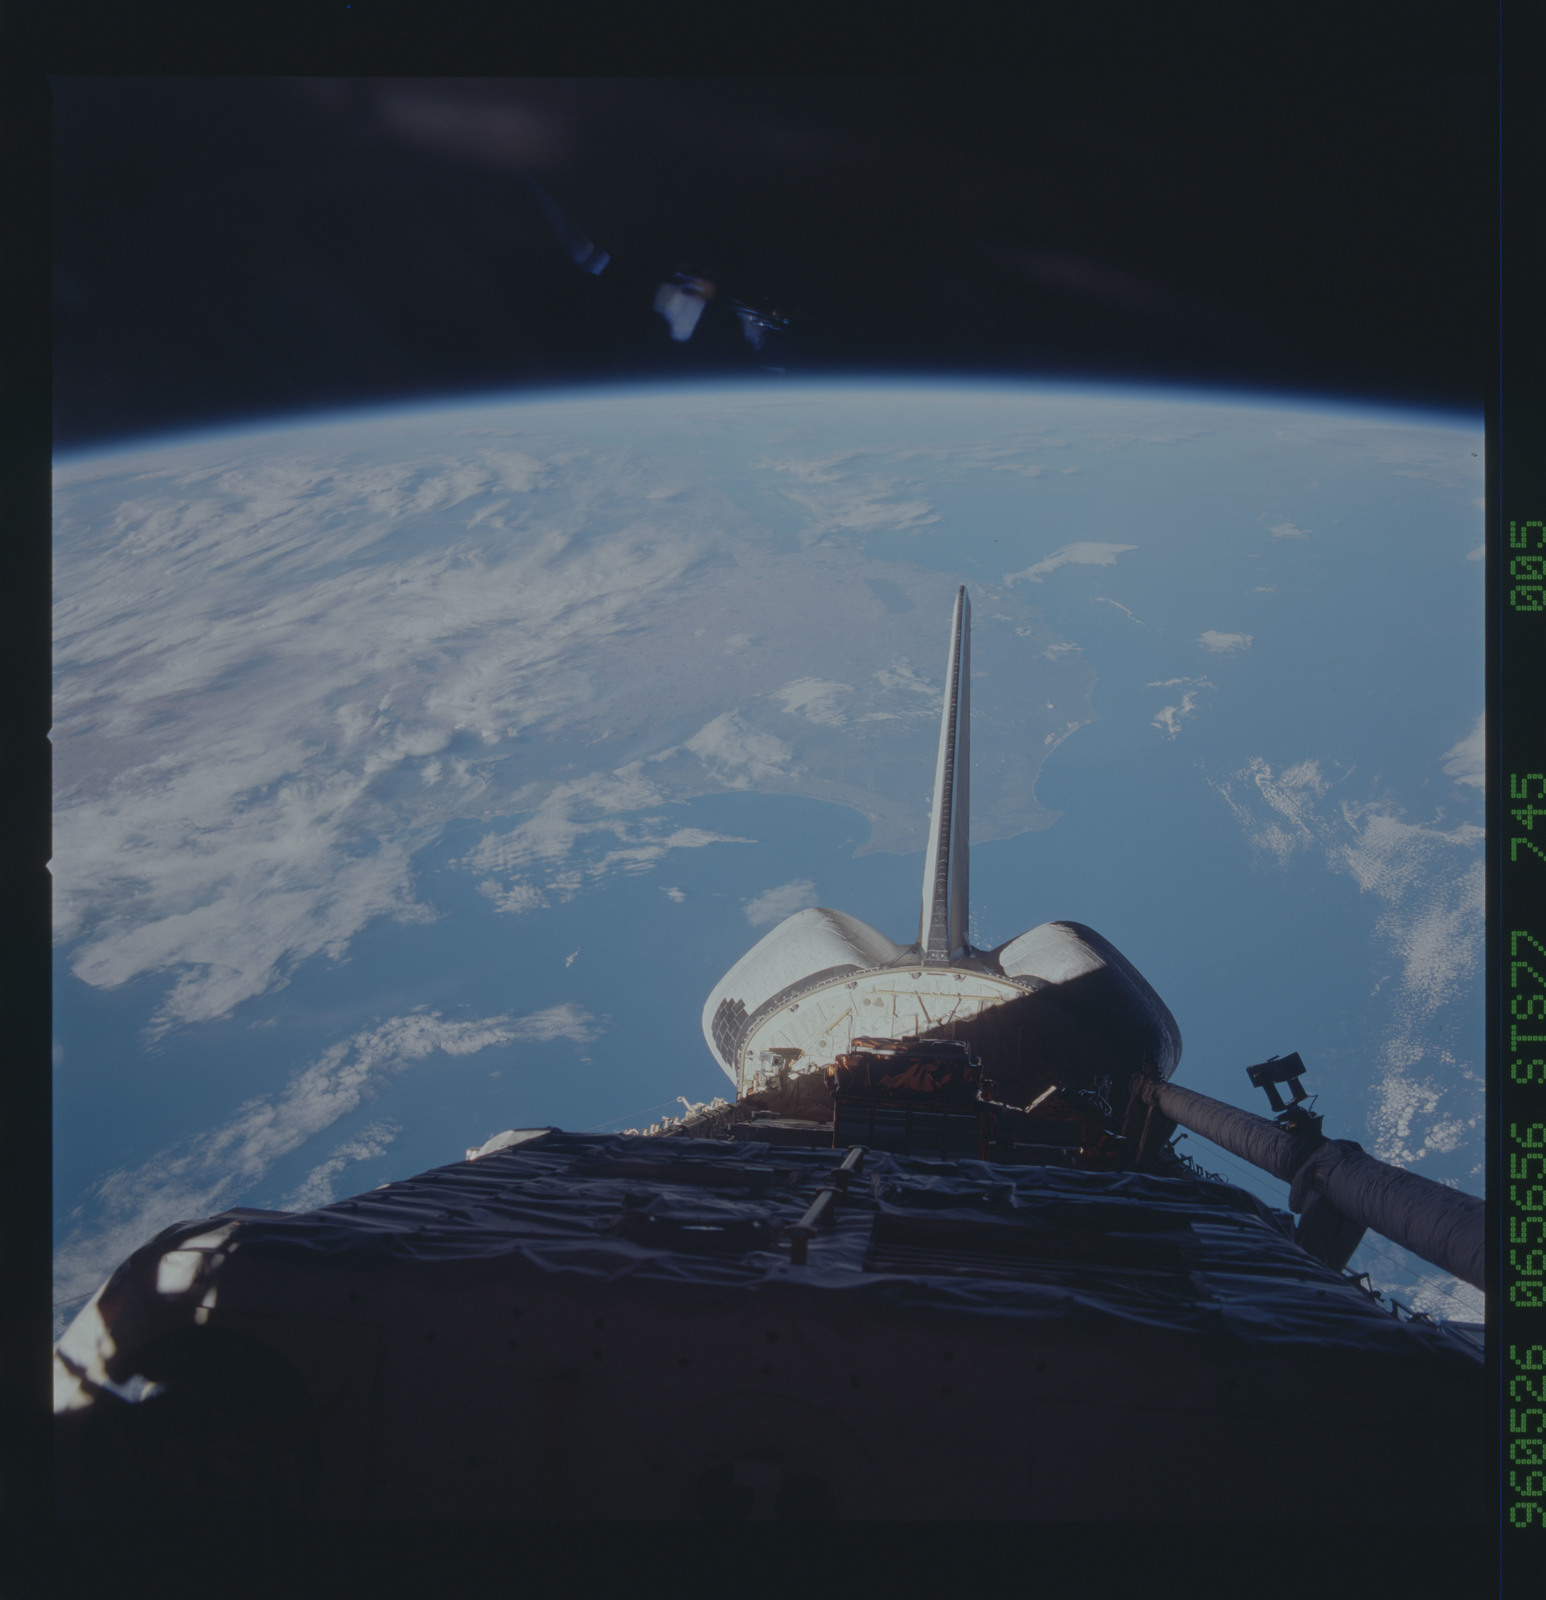 STS077-745-005 - STS-077 - View of the Endeavour's payload bay